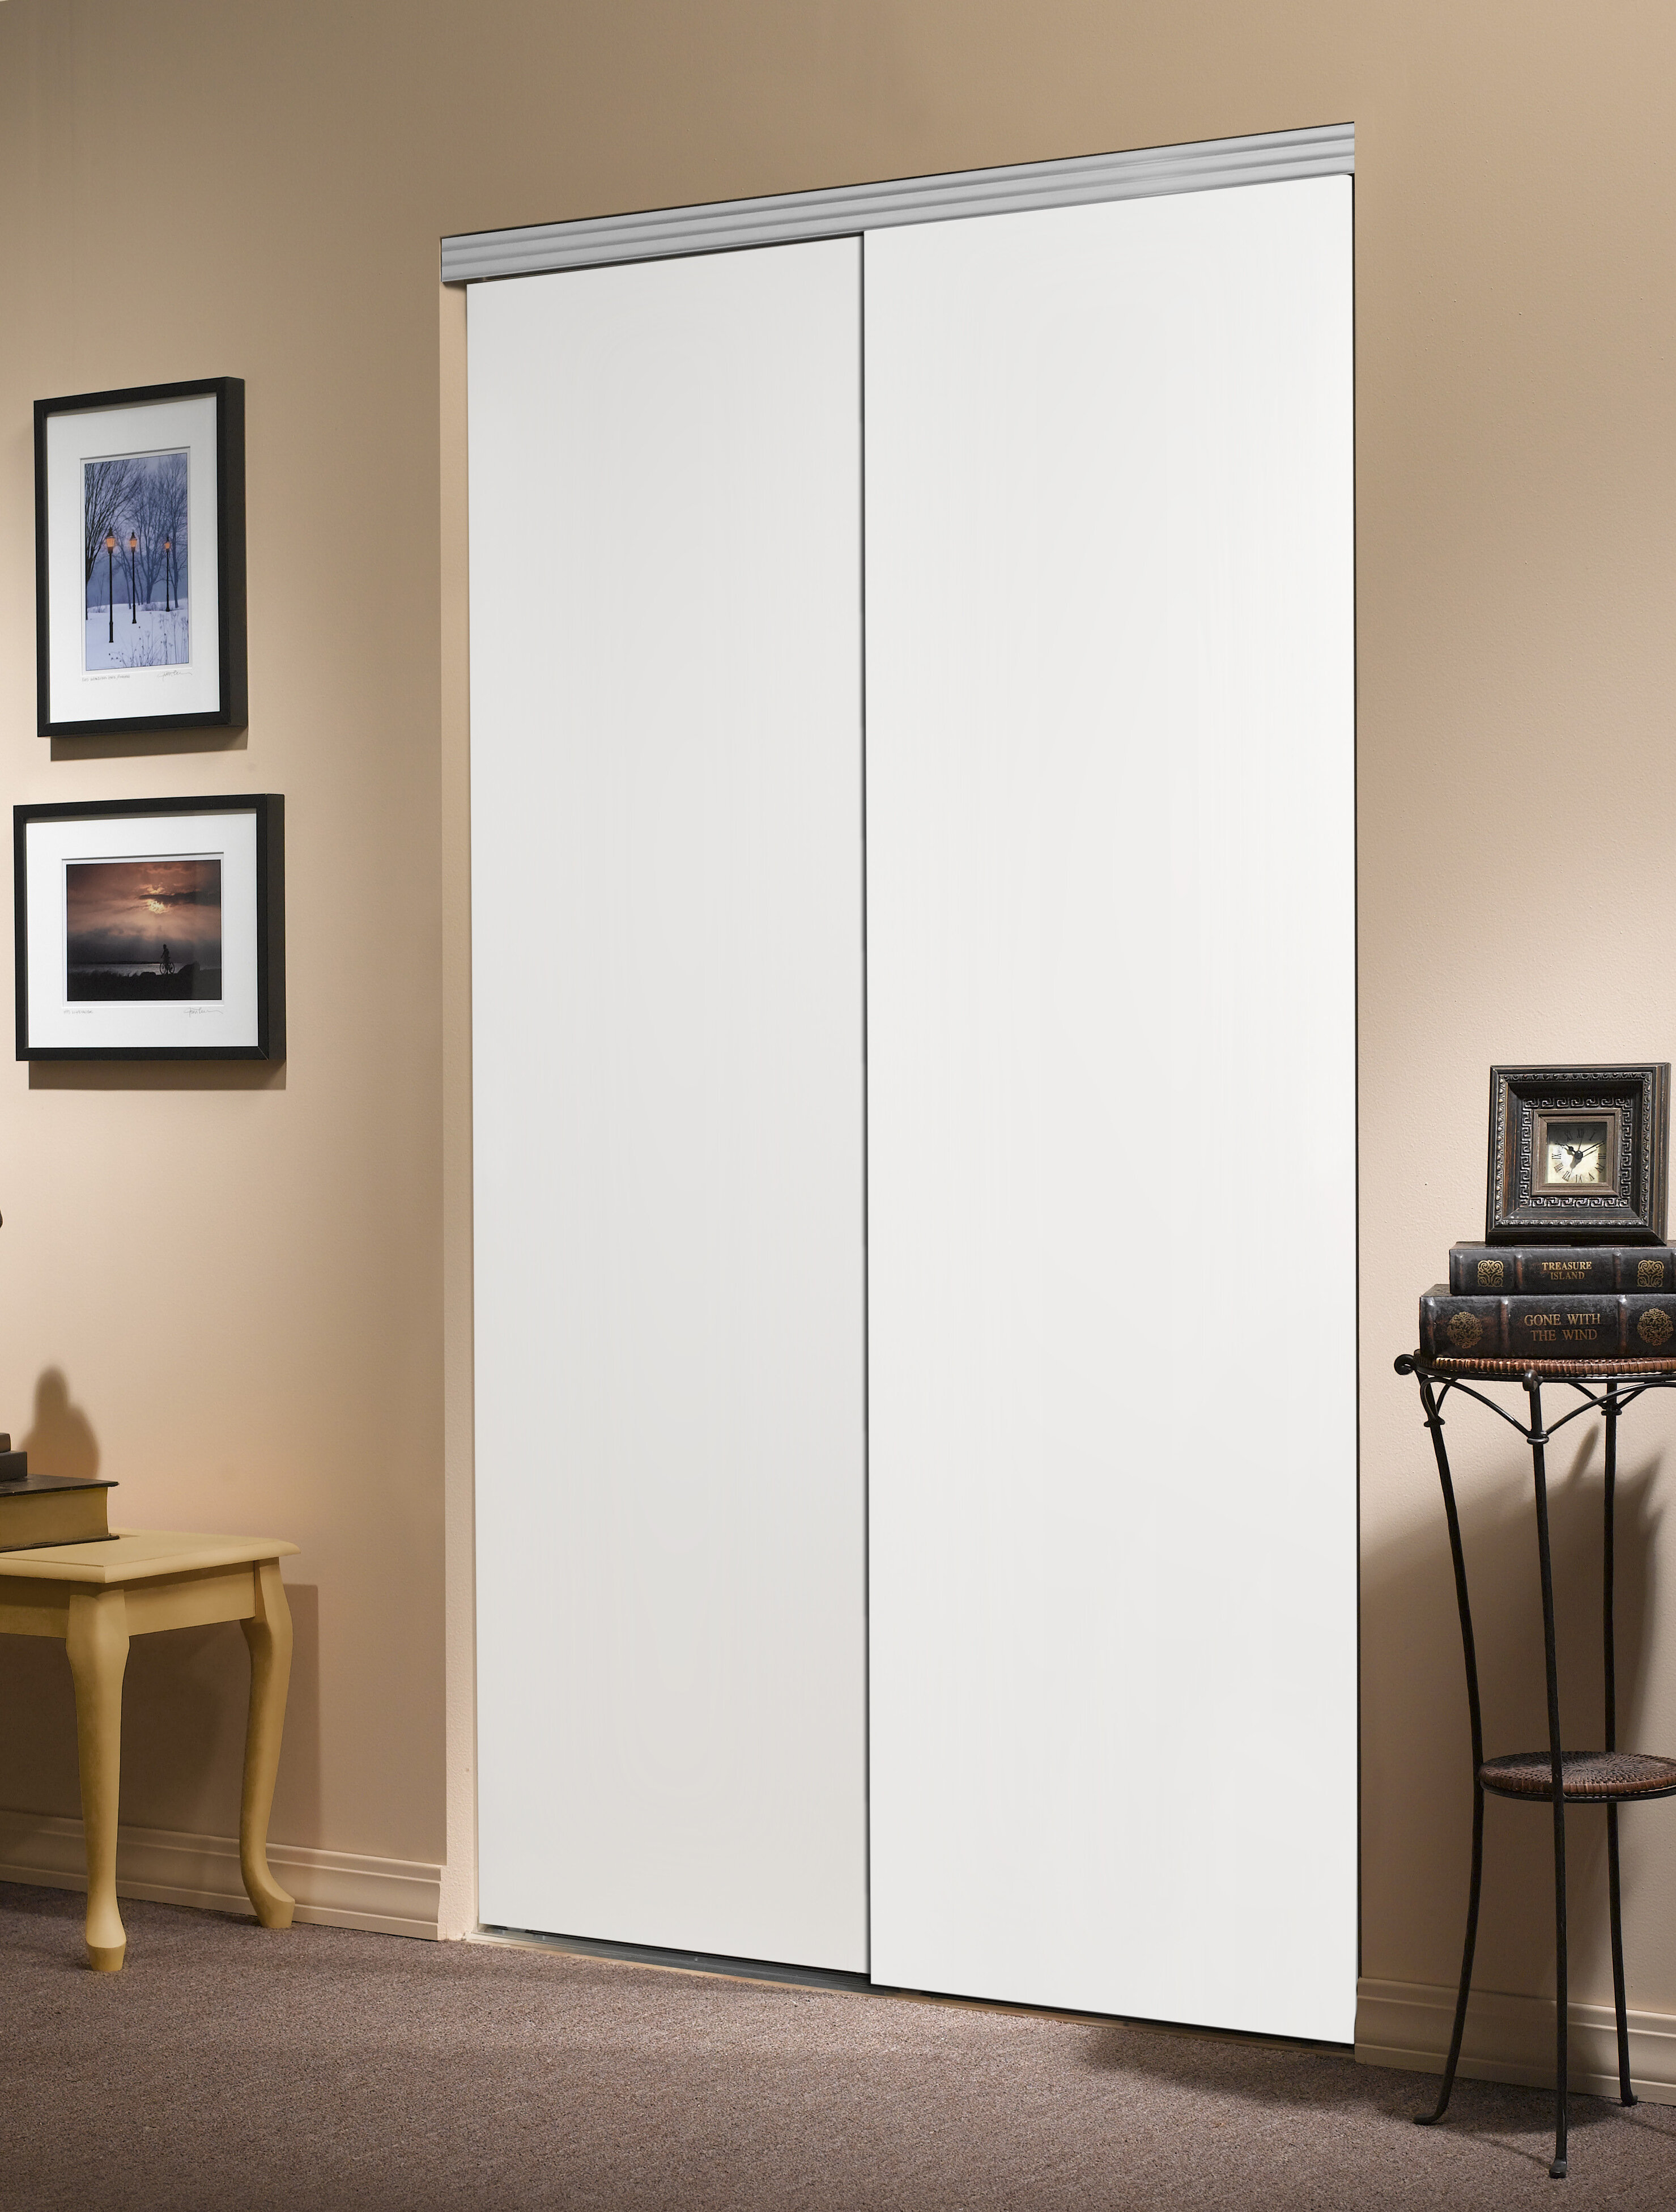 Custom Door And Mirror Flush Manufactured Wood Unfinished Smooth Flush Solid Core Primed Mdf Interior Wayfair